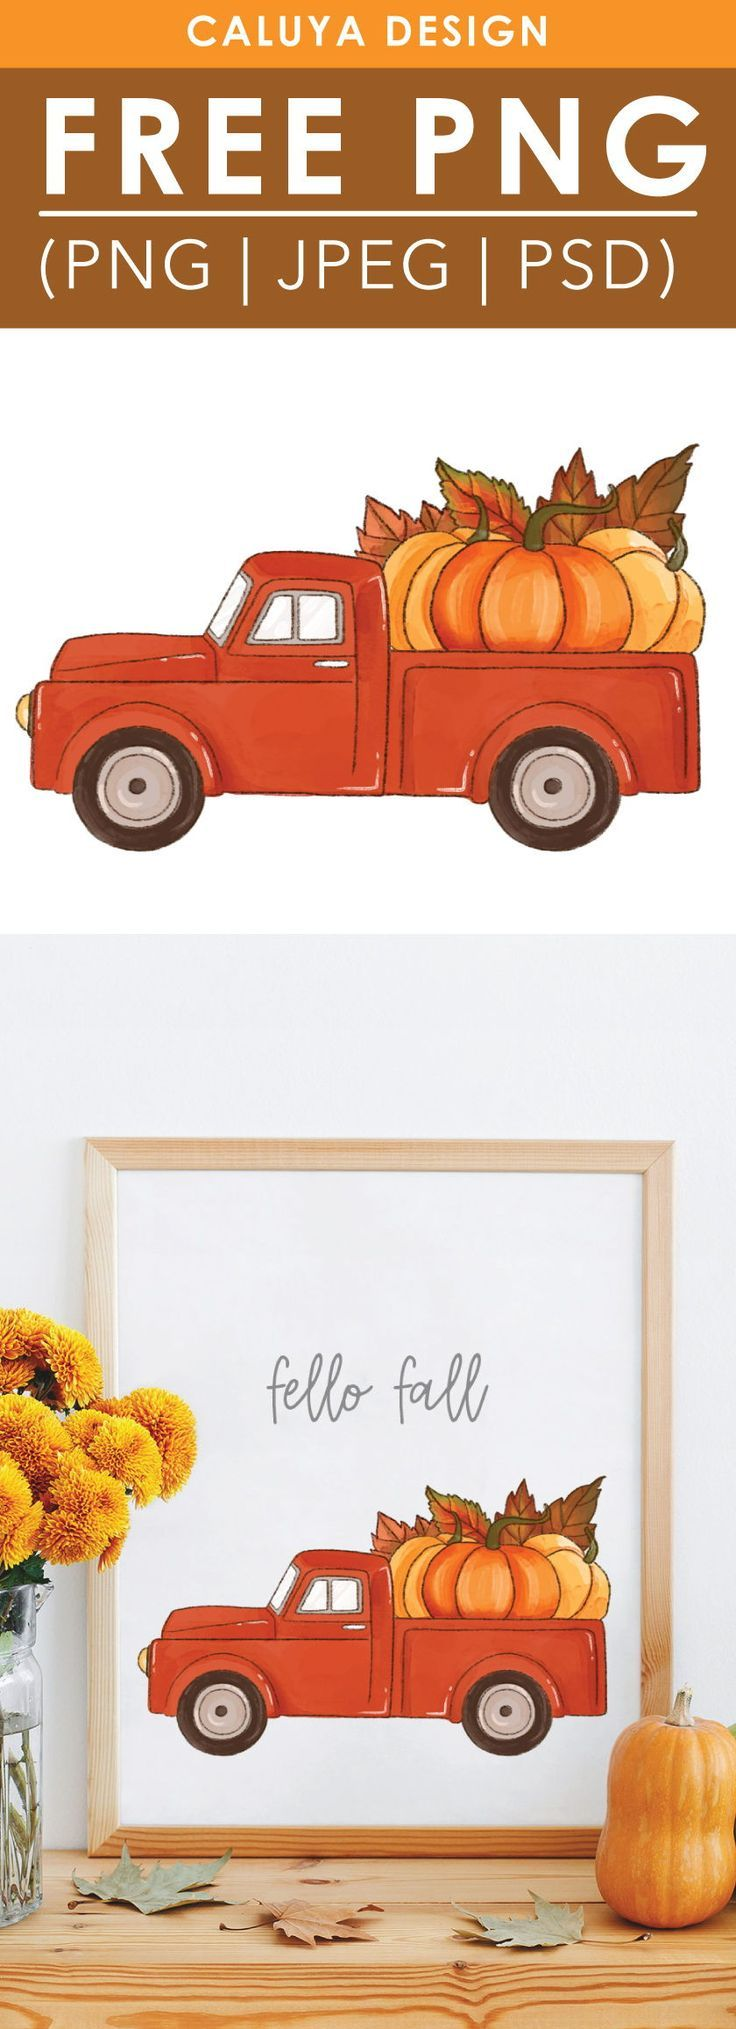 Free Truck Clipart : truck, clipart, Watercolor, Truck, Clipart,, Printable, Download., Per…, Graphic,